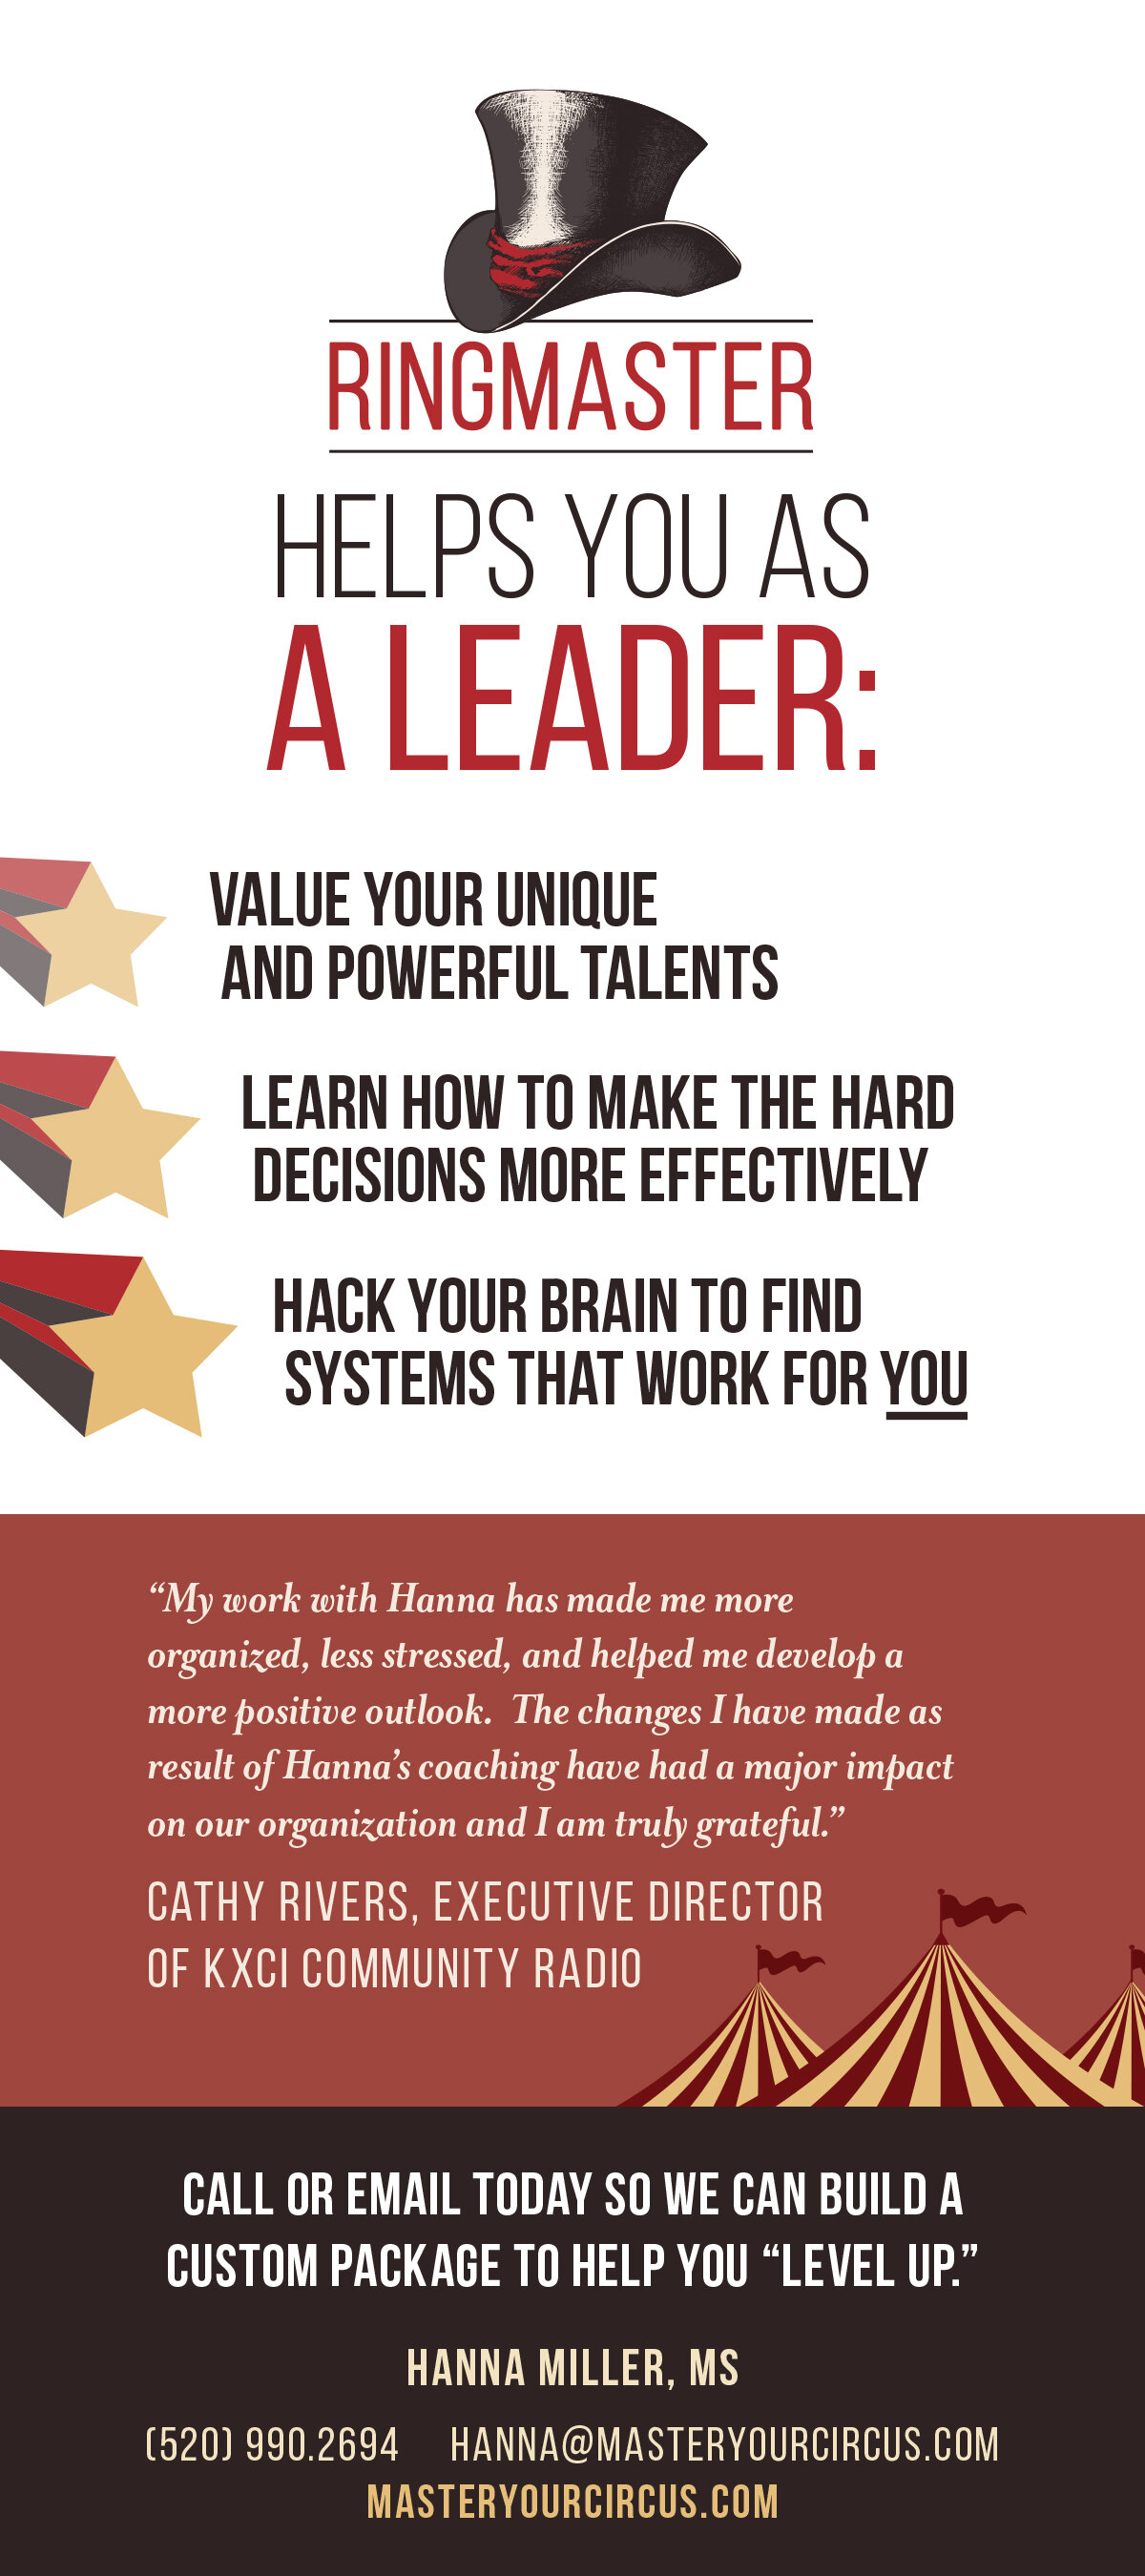 Helps-you-as-a-Leader-091719.jpg